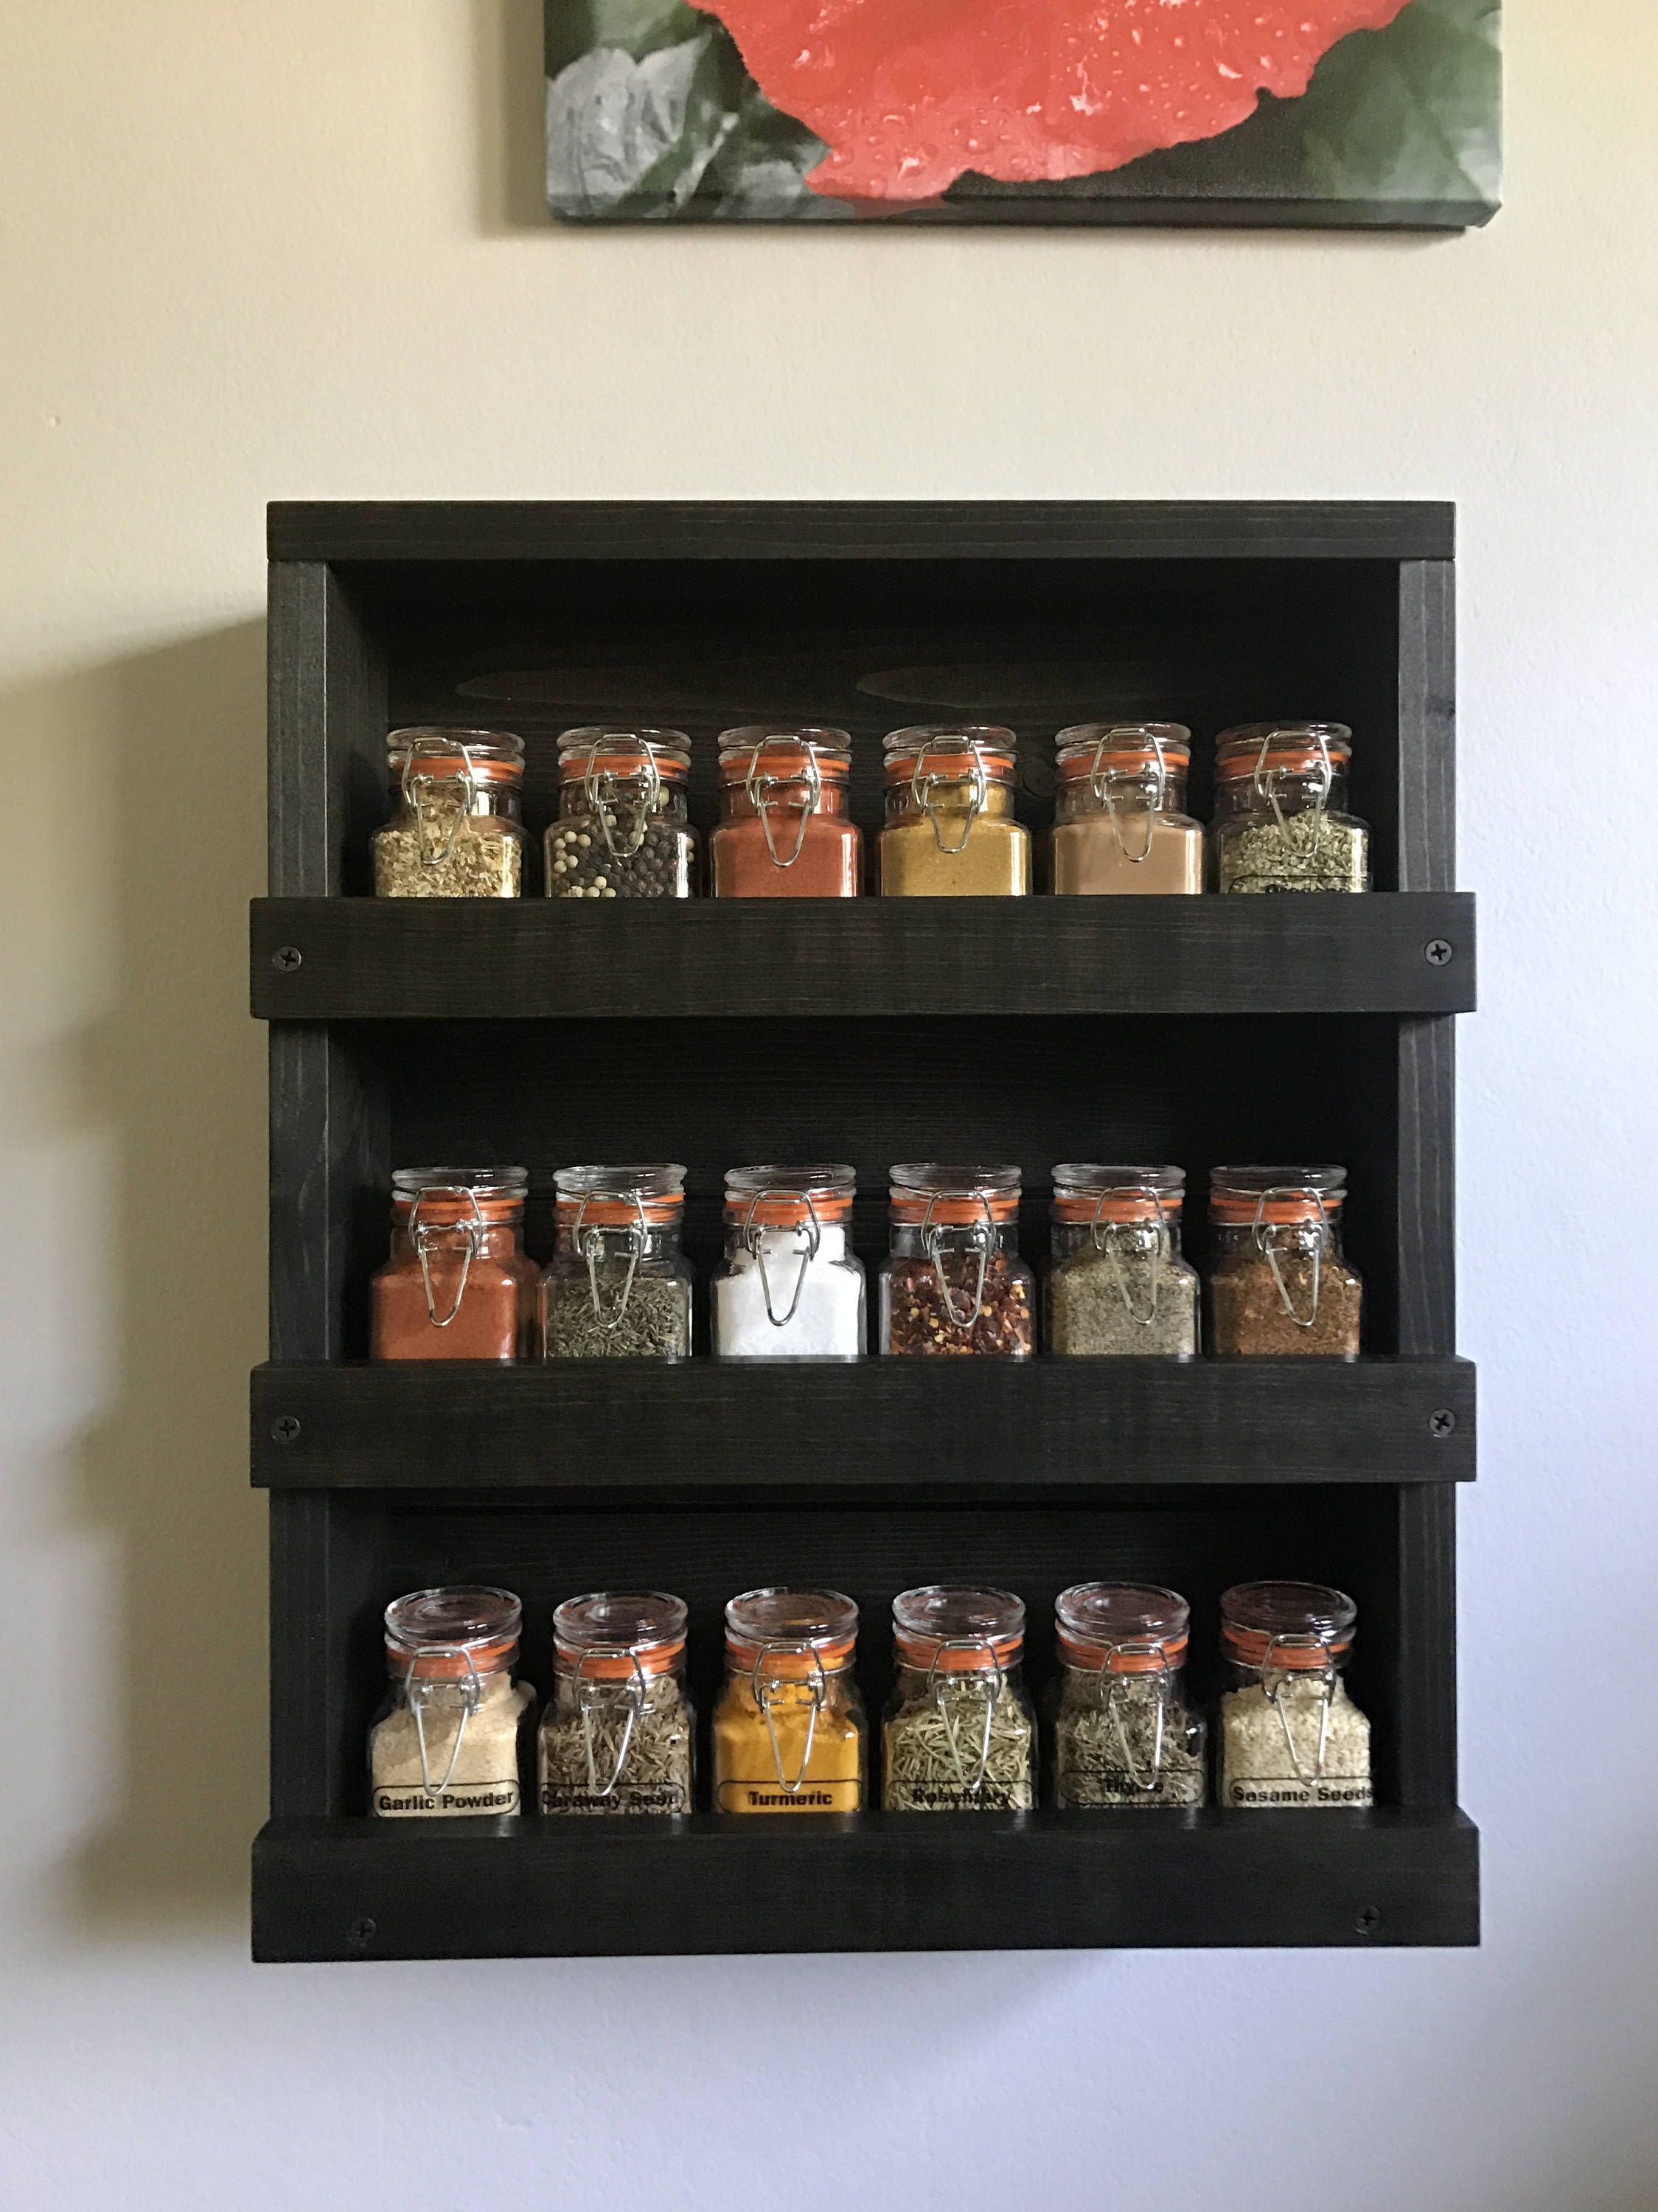 Pin By Blackironworks On Manualidades In 2020 Kitchen Storage Shelves Modern Kitchen Shelves Wall Mounted Spice Rack